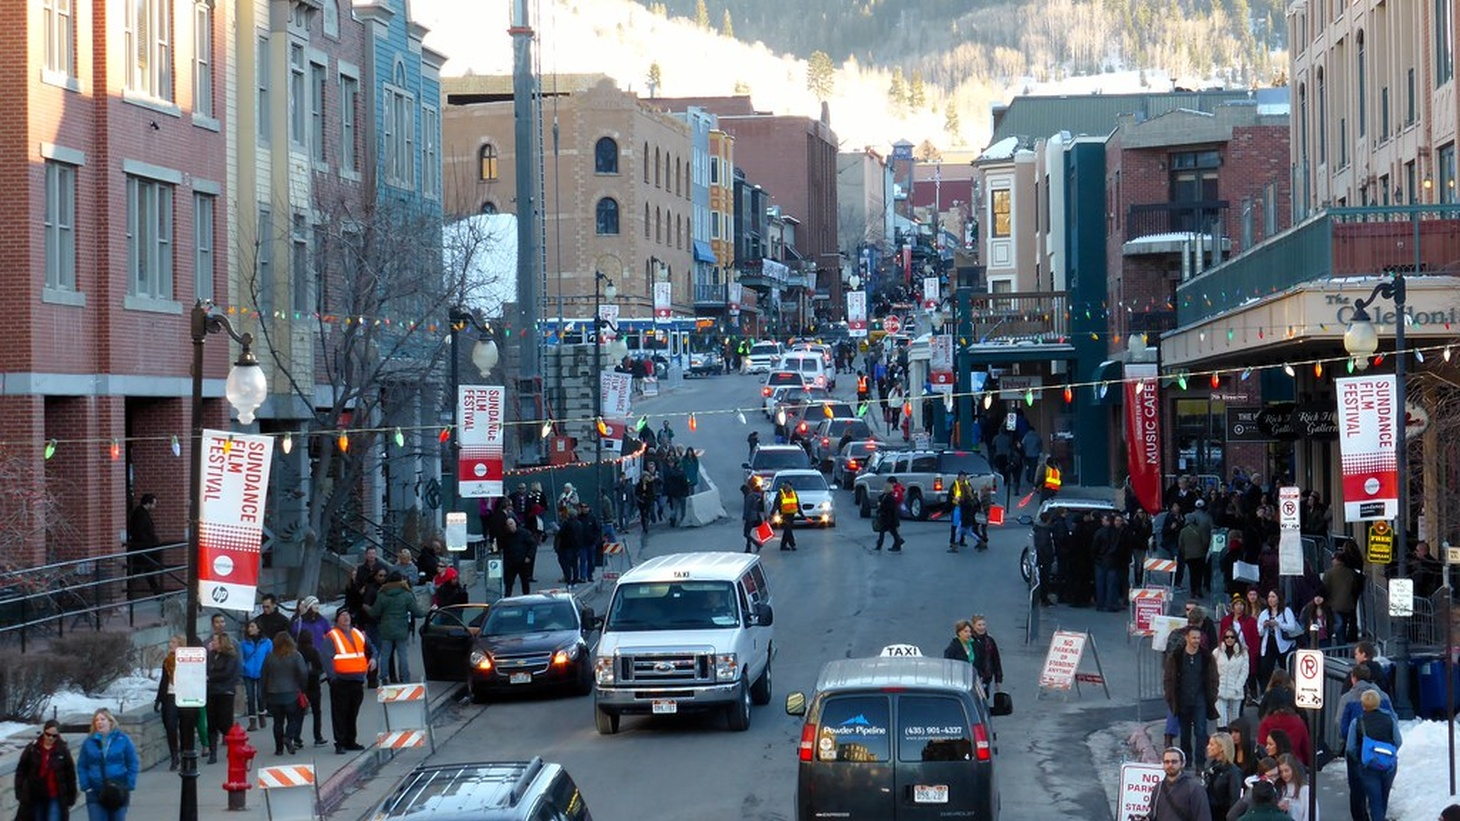 Normally the Sundance Film Festival means a busy Park City, Utah, but not this year.